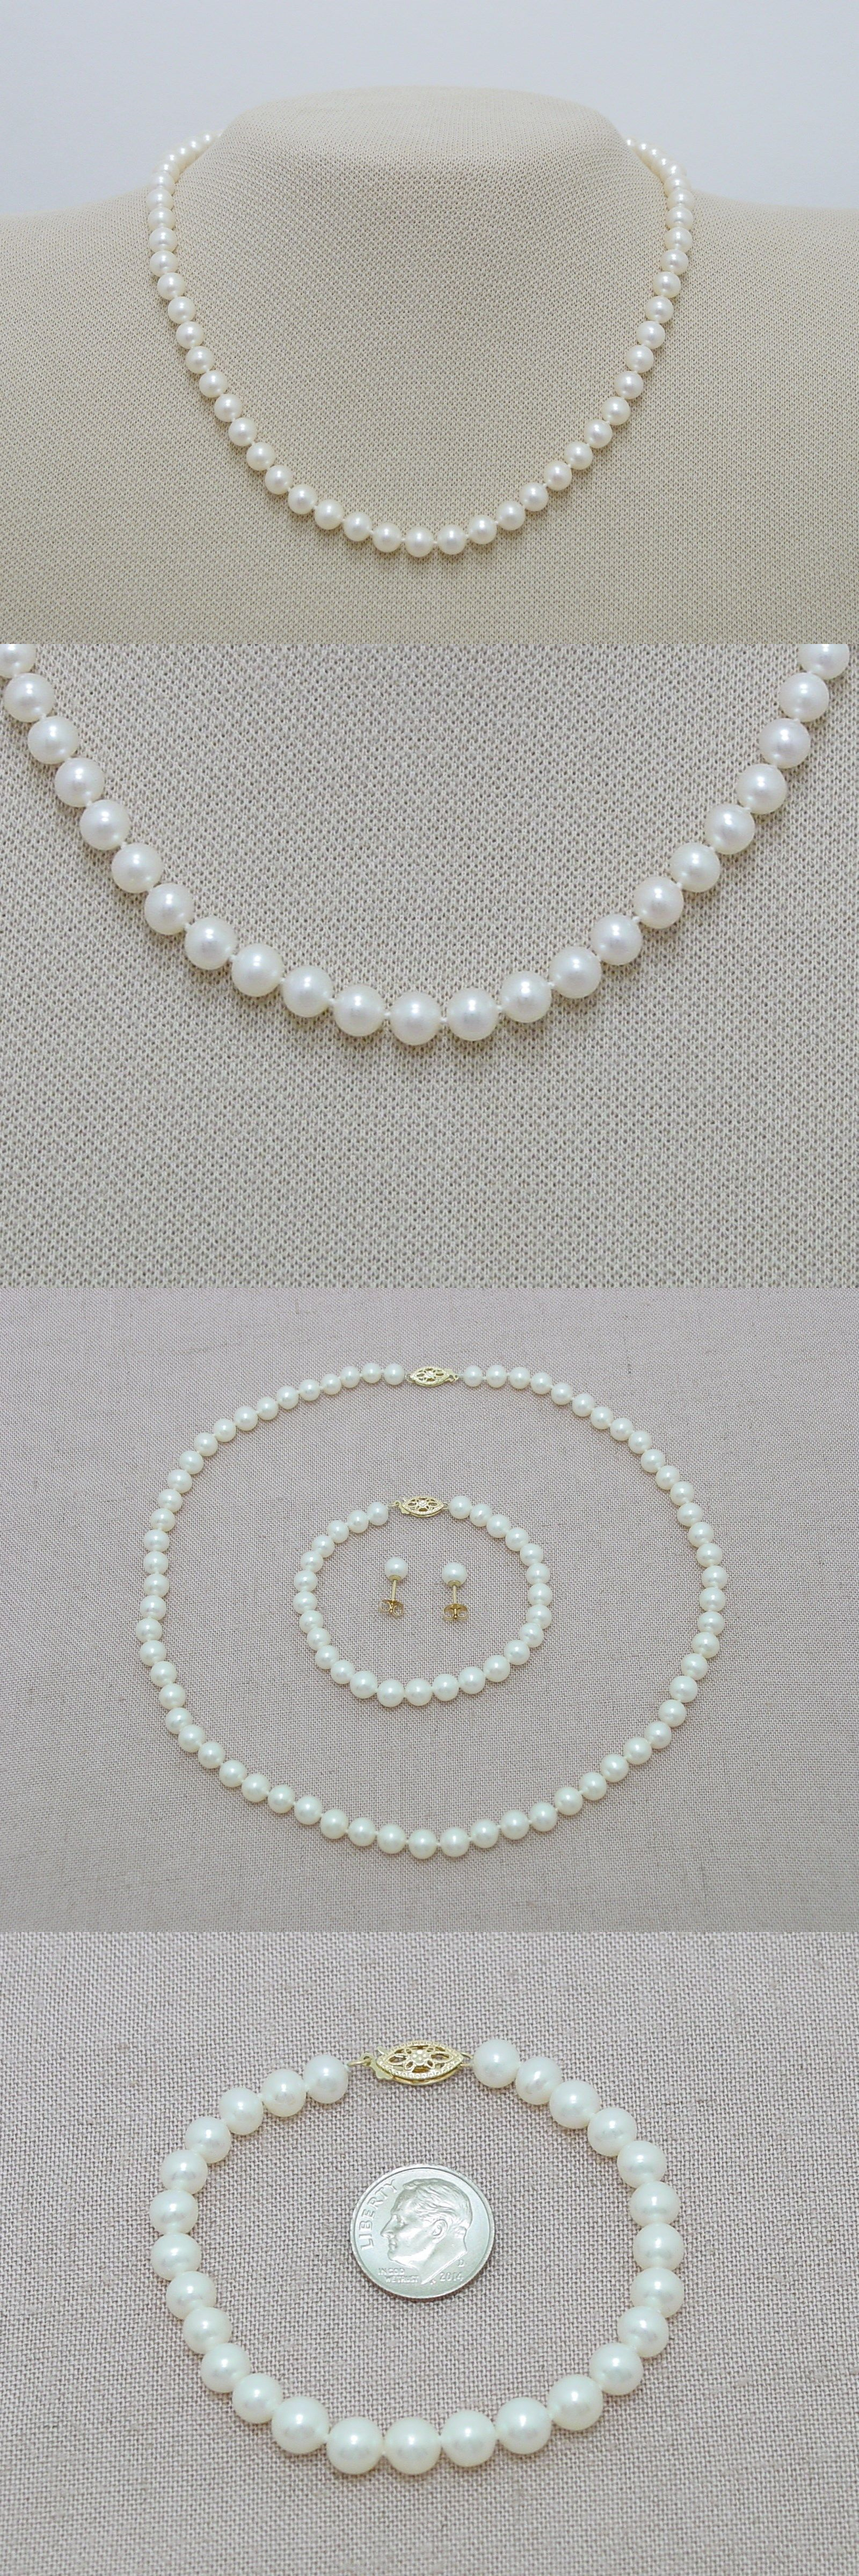 Pearl white mm freshwater pearl necklace bracelet